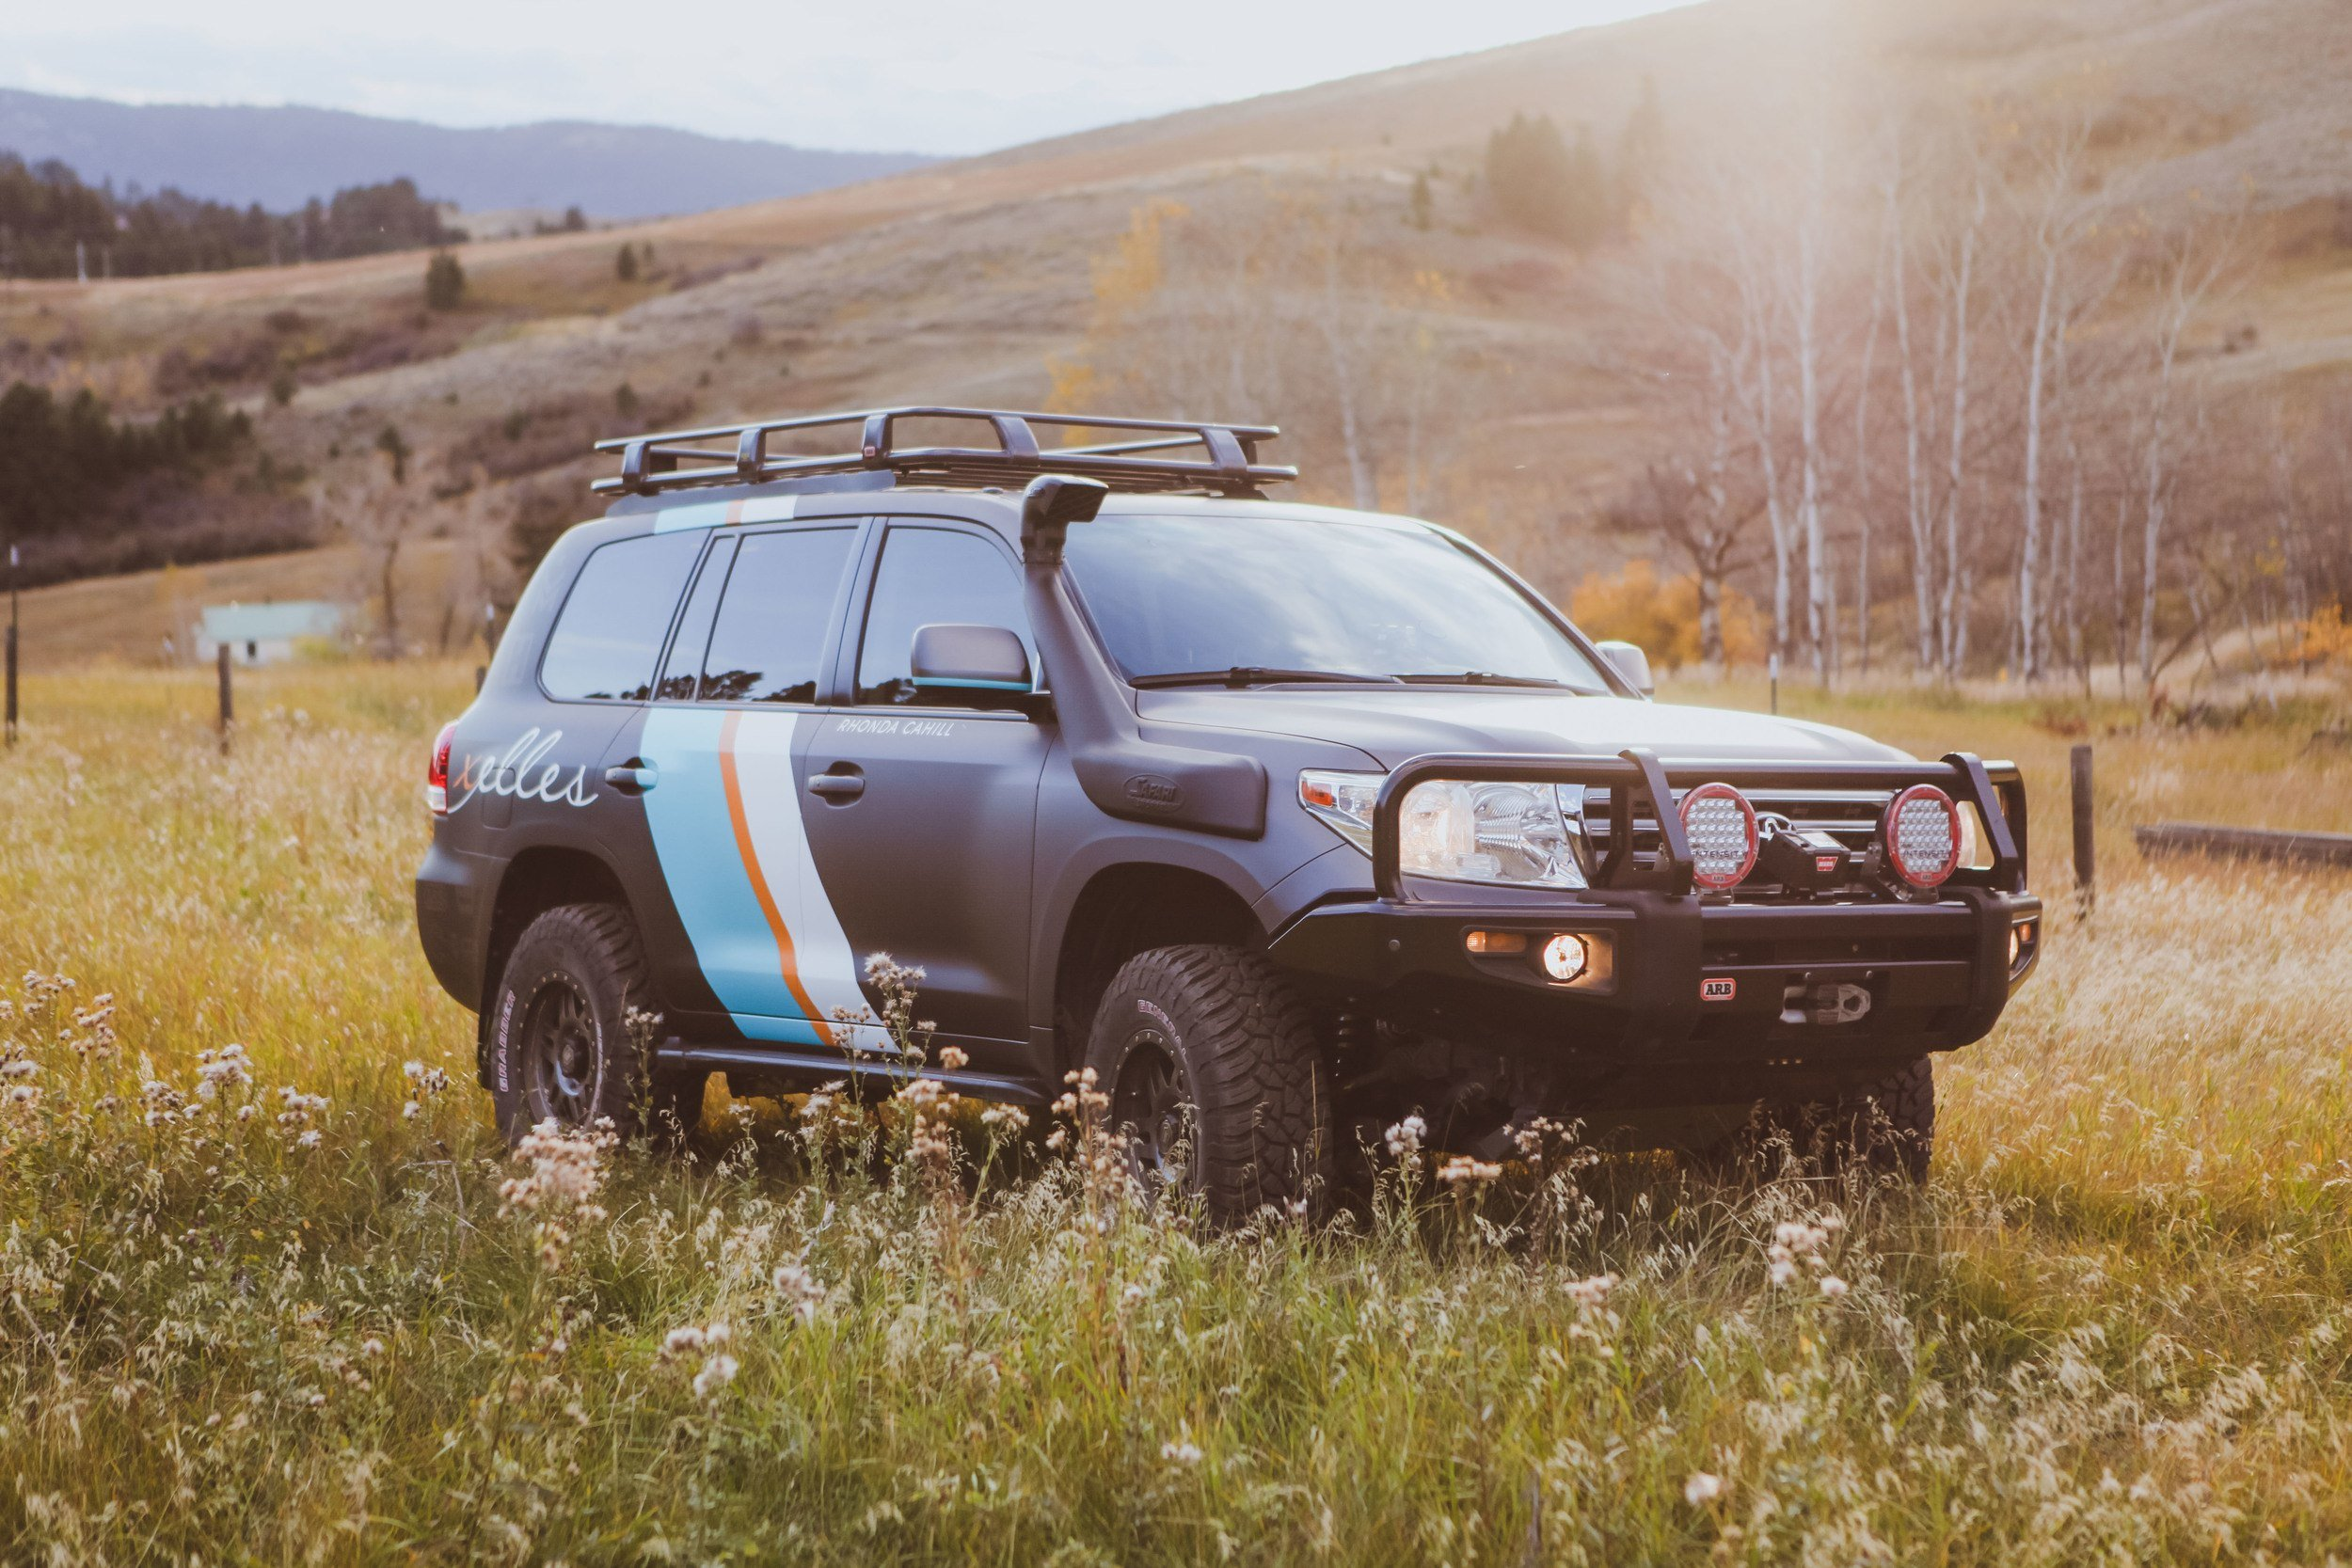 New Toyota 4runner >> Toyota 4Runner Trail Edition - Expedition Overland